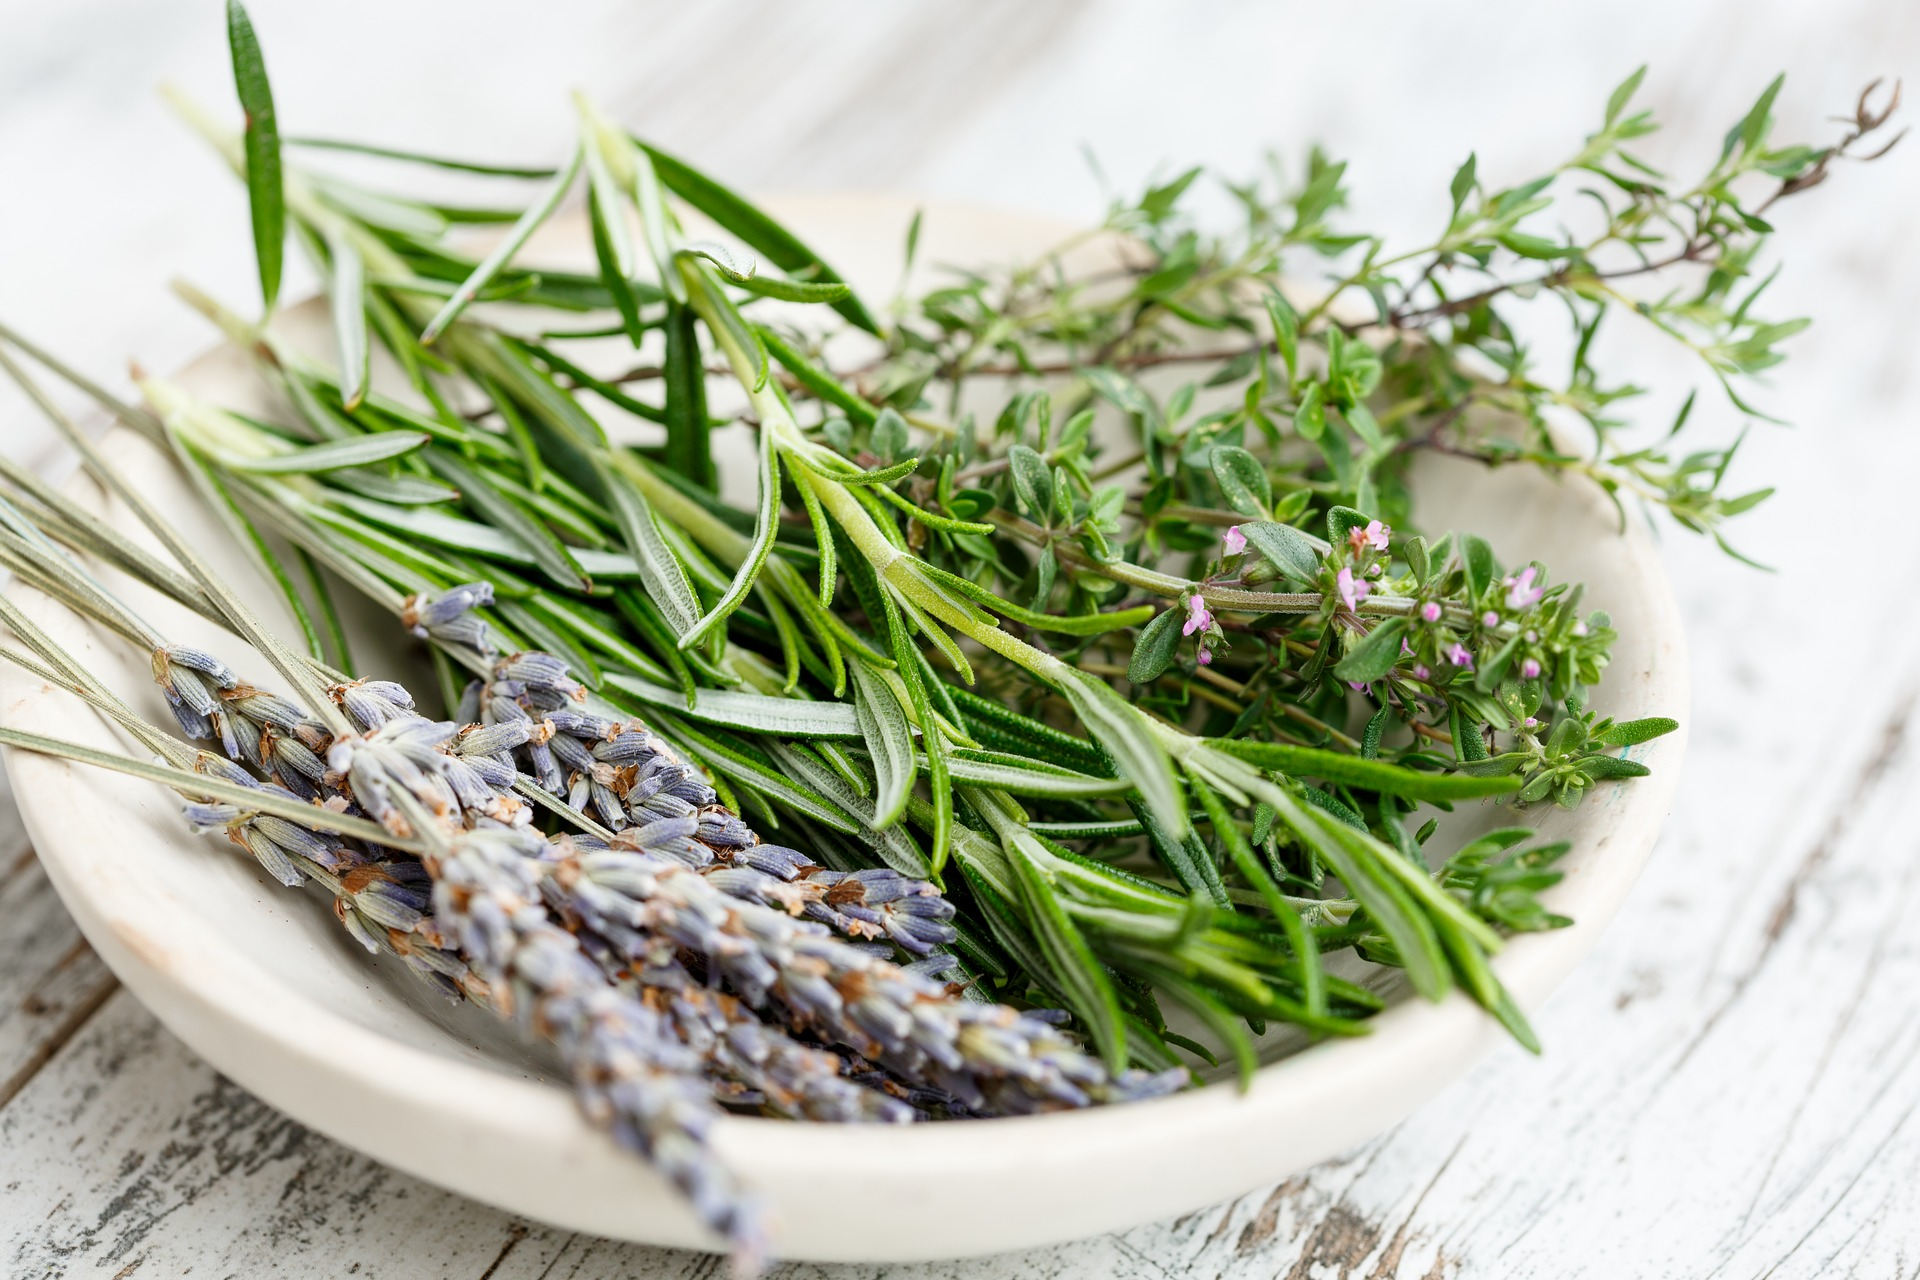 FIND OUT MORE ABOUT HERBES DE PROVENCE